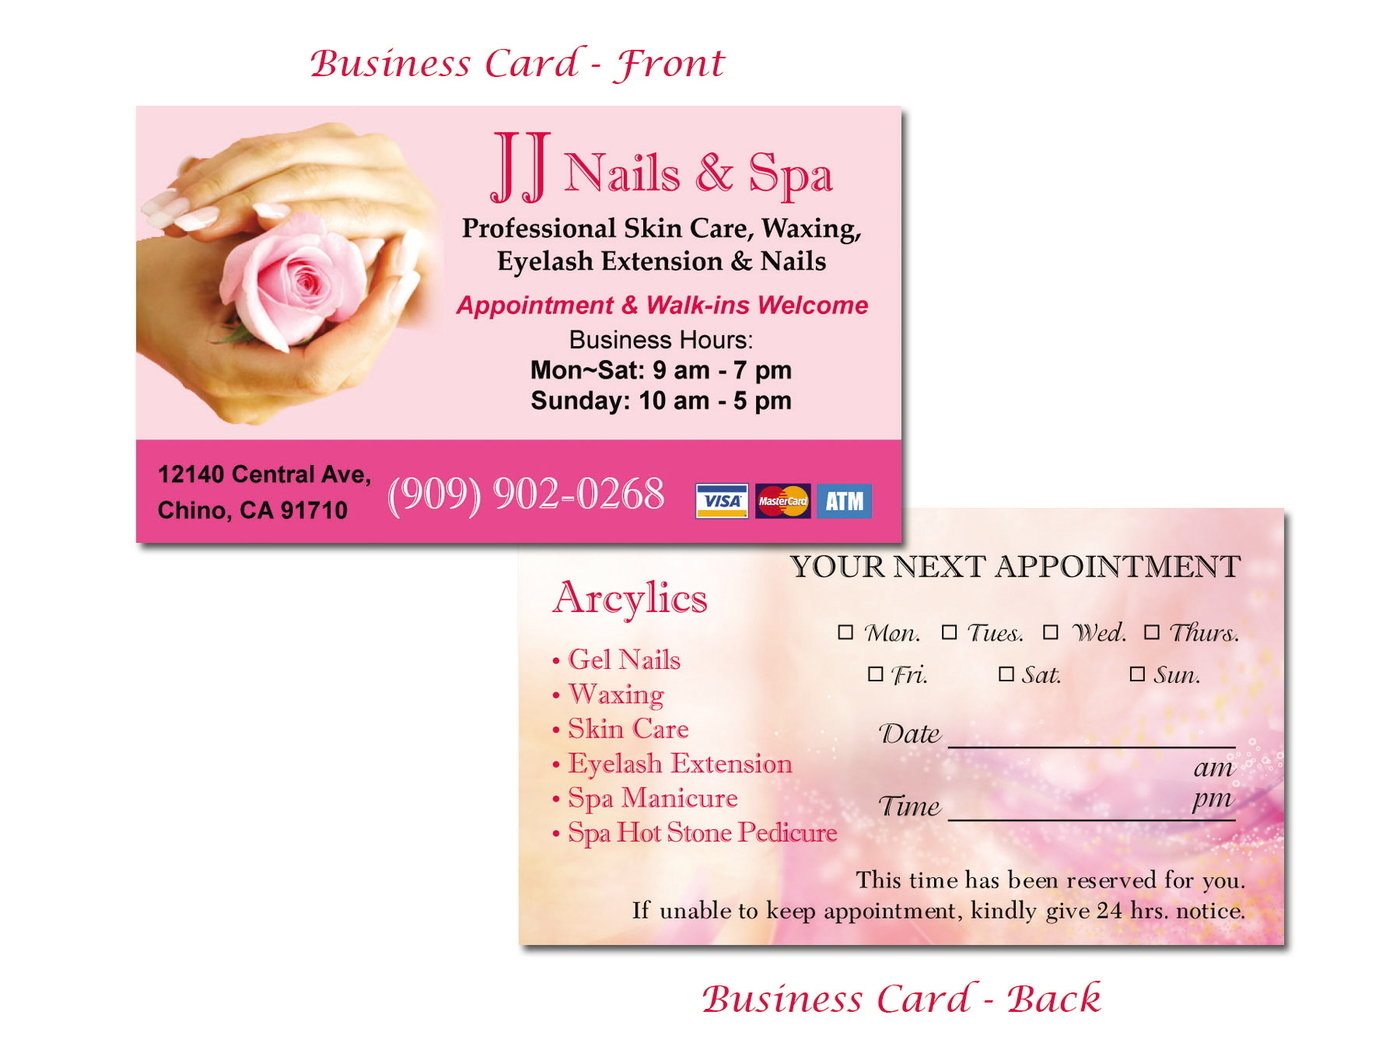 Nails business cards image collections free business cards print by ivy huang at coroflot business card of jj nails spa magicingreecefo image collections magicingreecefo Image collections